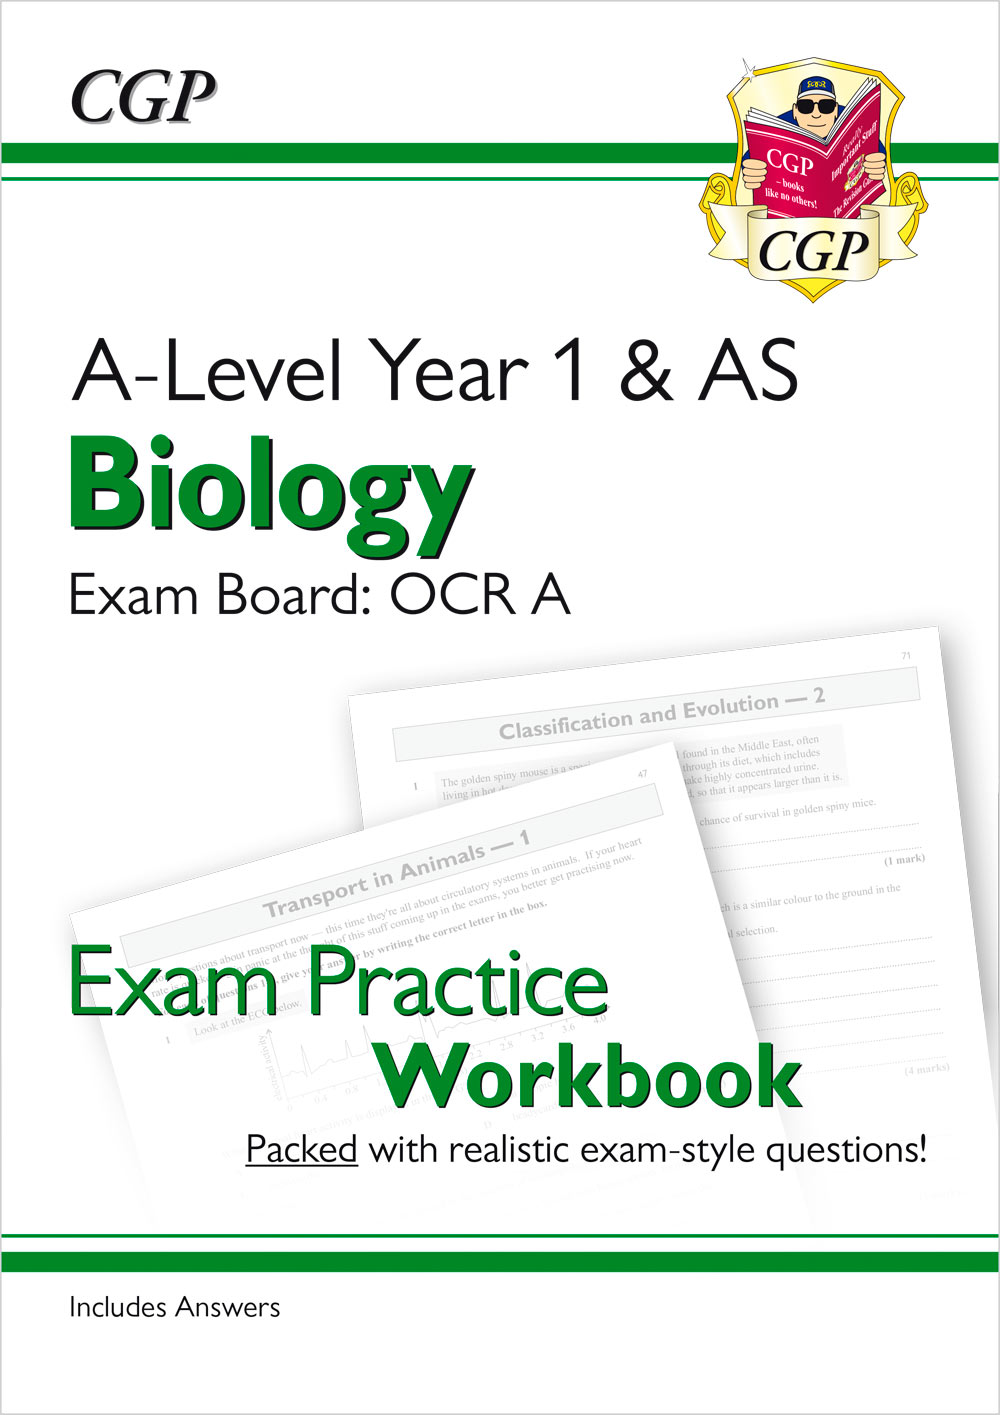 BRAQ51 - New A-Level Biology: OCR A Year 1 & AS Exam Practice Workbook - includes Answers